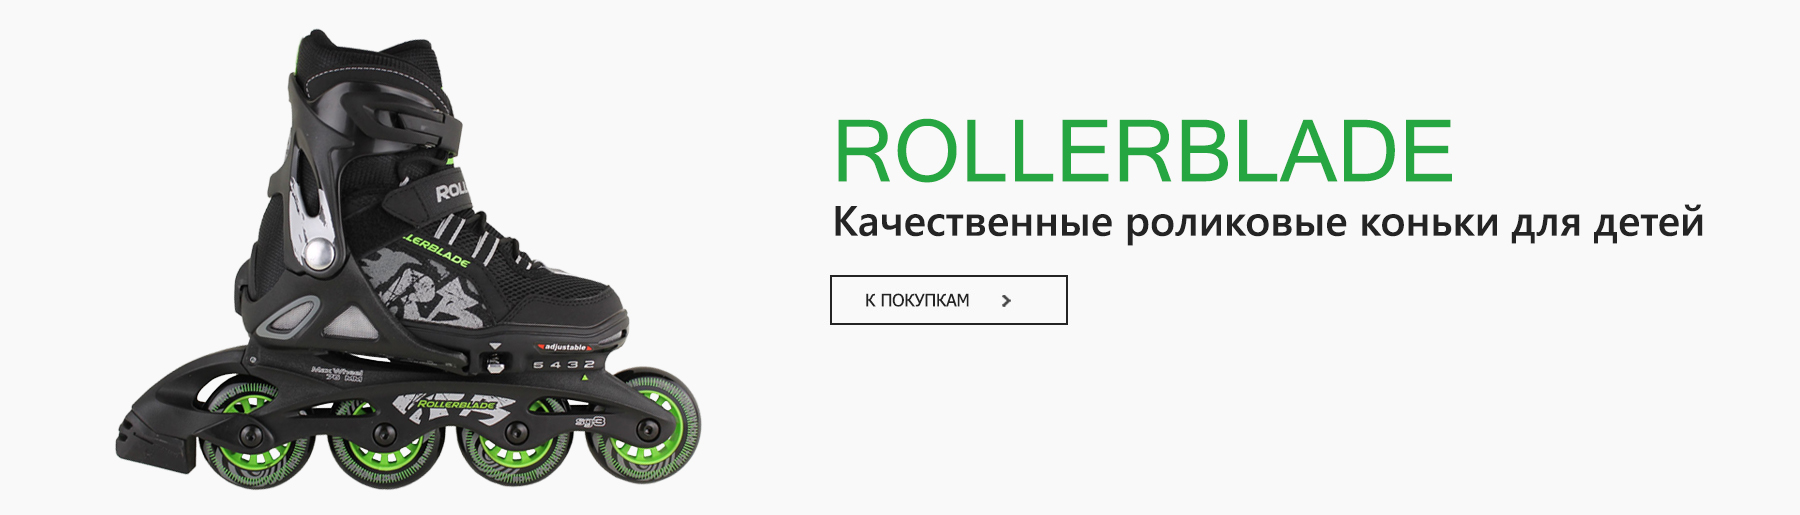 Rollerable